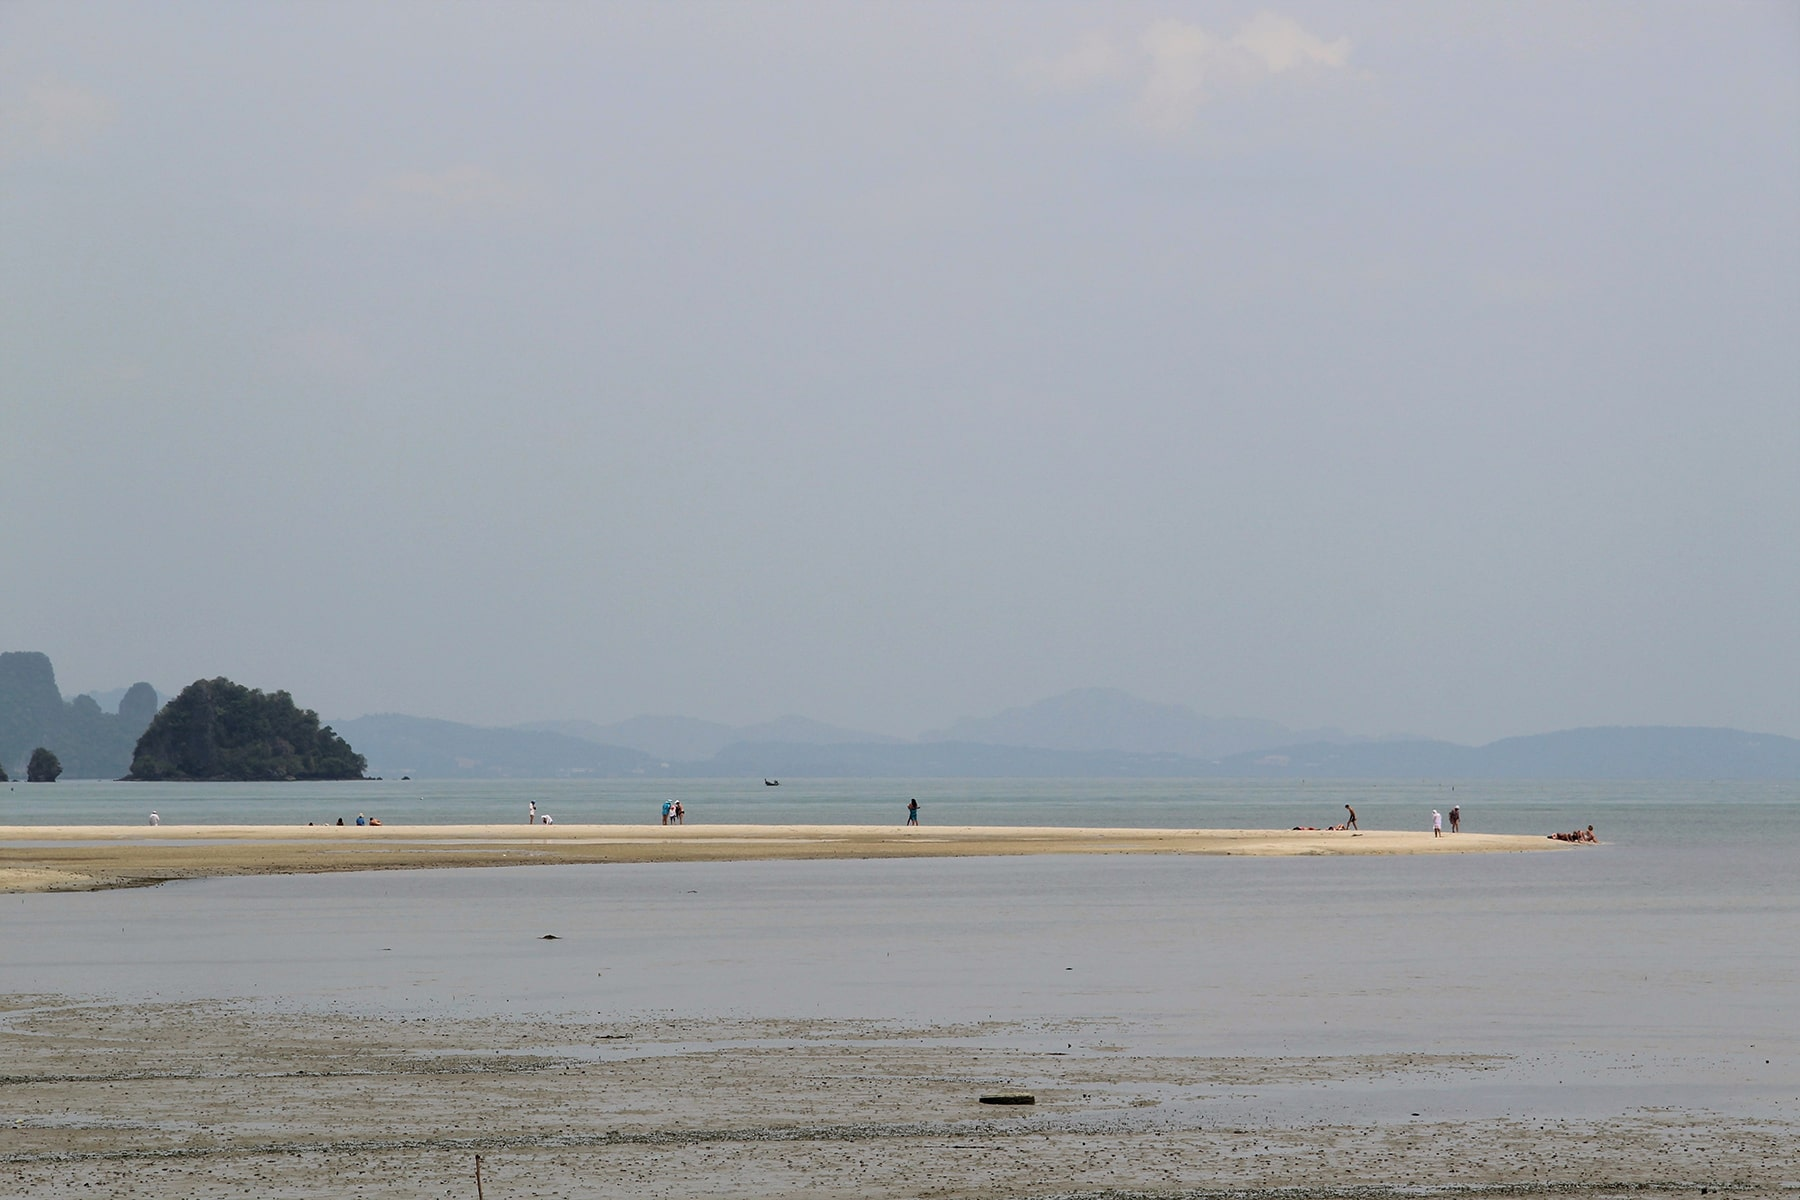 The strip of beach with low tide at Hua Lam Laad Beach - Koh Yao Yai island